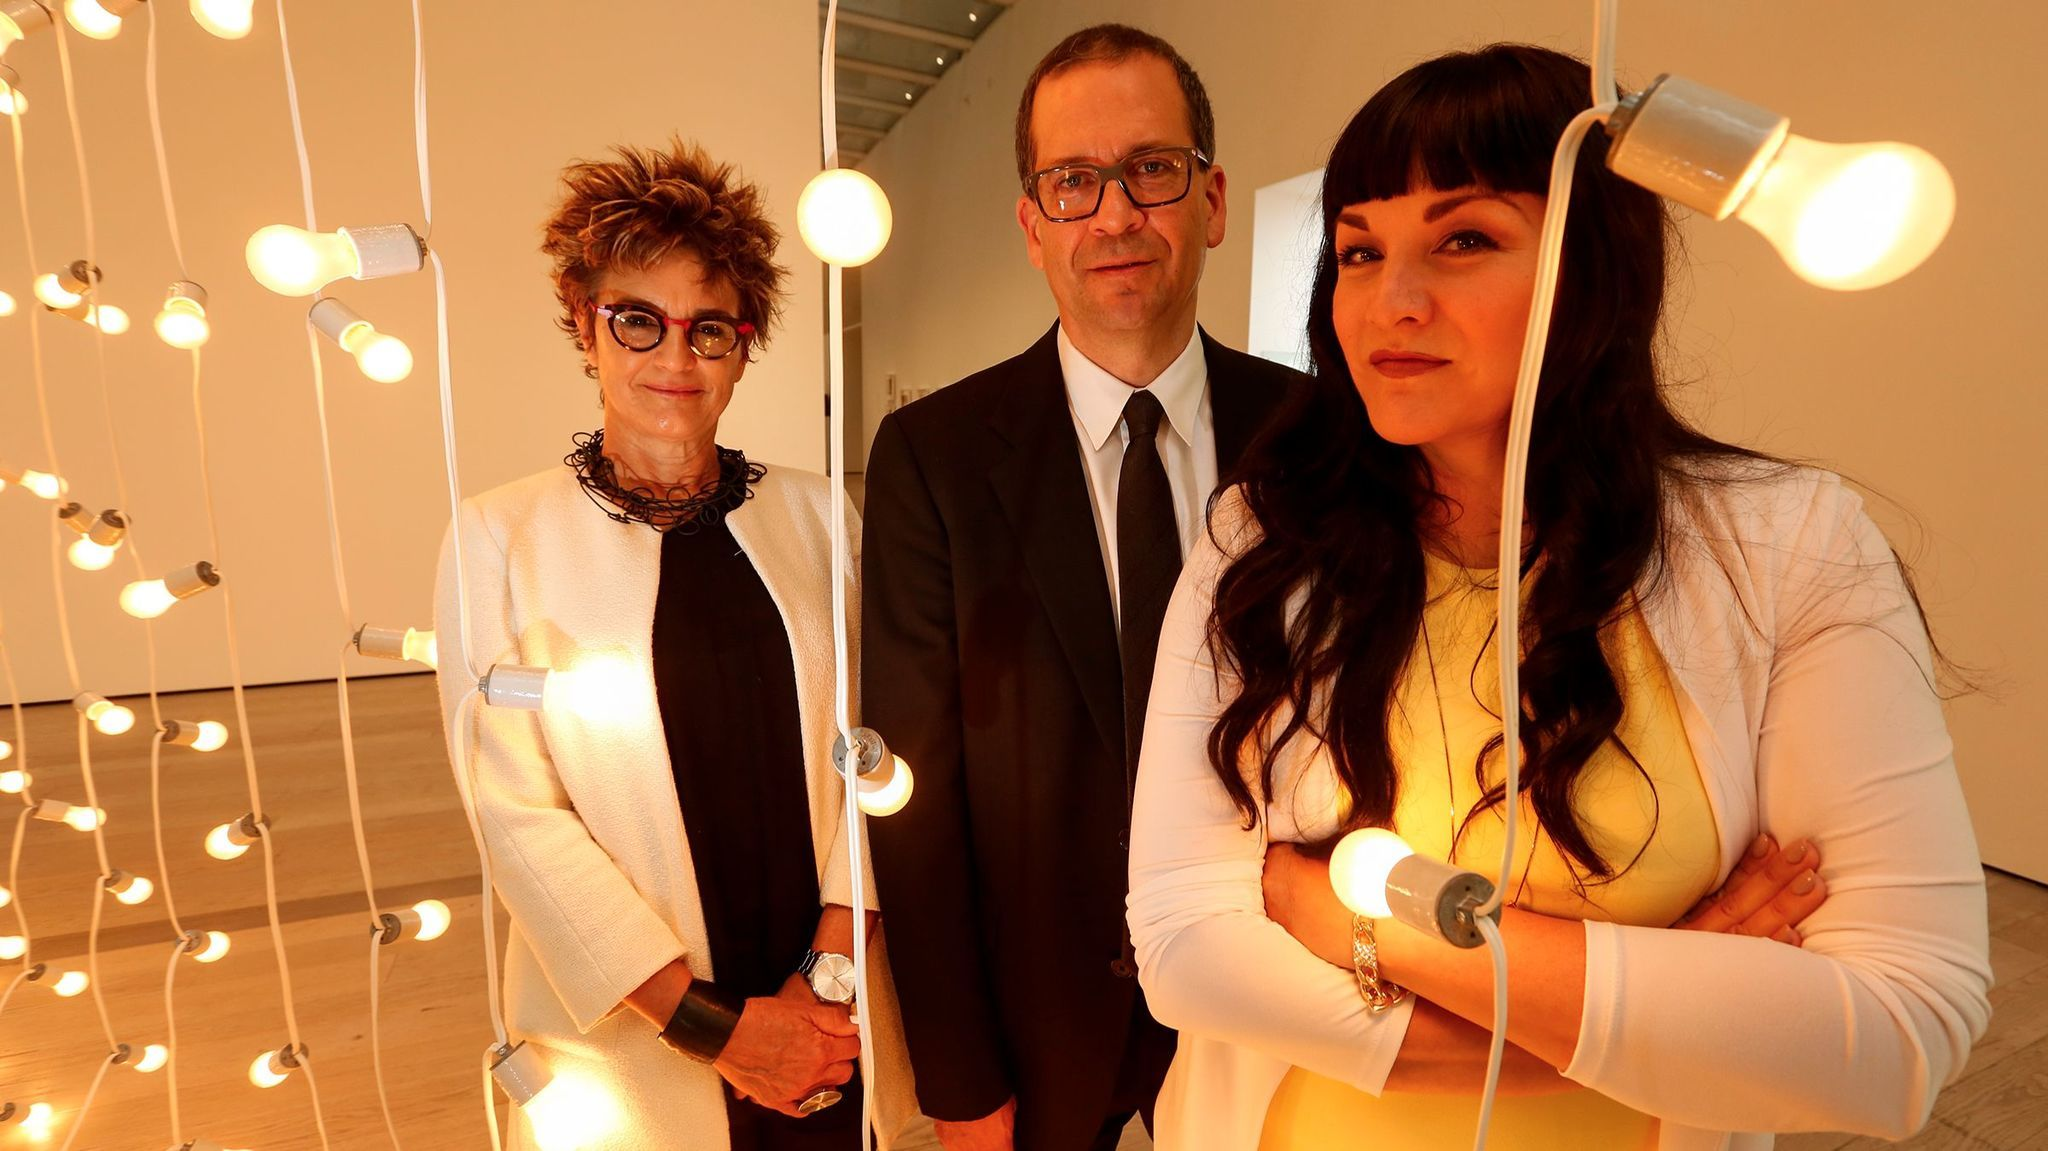 """HOME: So Different, So Appealing curators Mari Carmen Rameríz, Chon A. Noriega and Pilar Thompkins Rivas standing next to an installation by the late Felix Gonzalez-Torres, """"Untitled (North)"""" 1993. (Mark Boster/Los Angeles Times)"""